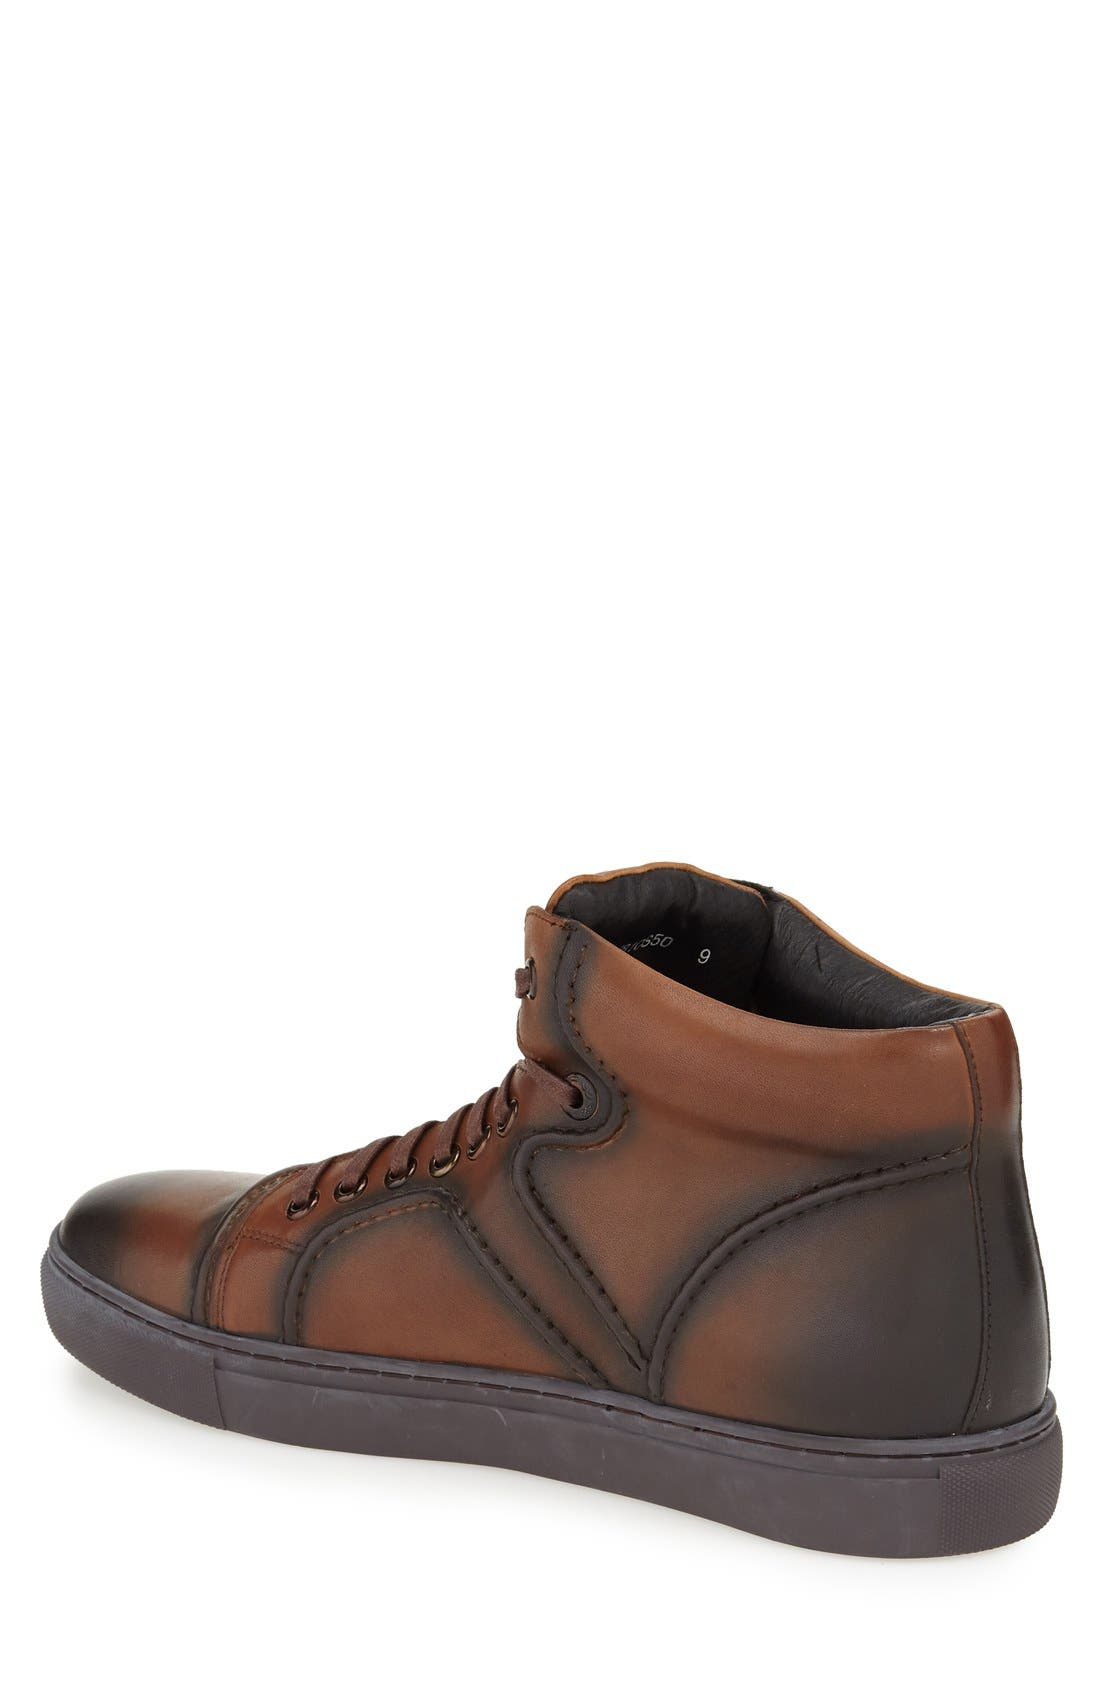 Vinyl Sneaker,                             Alternate thumbnail 2, color,                             Cognac